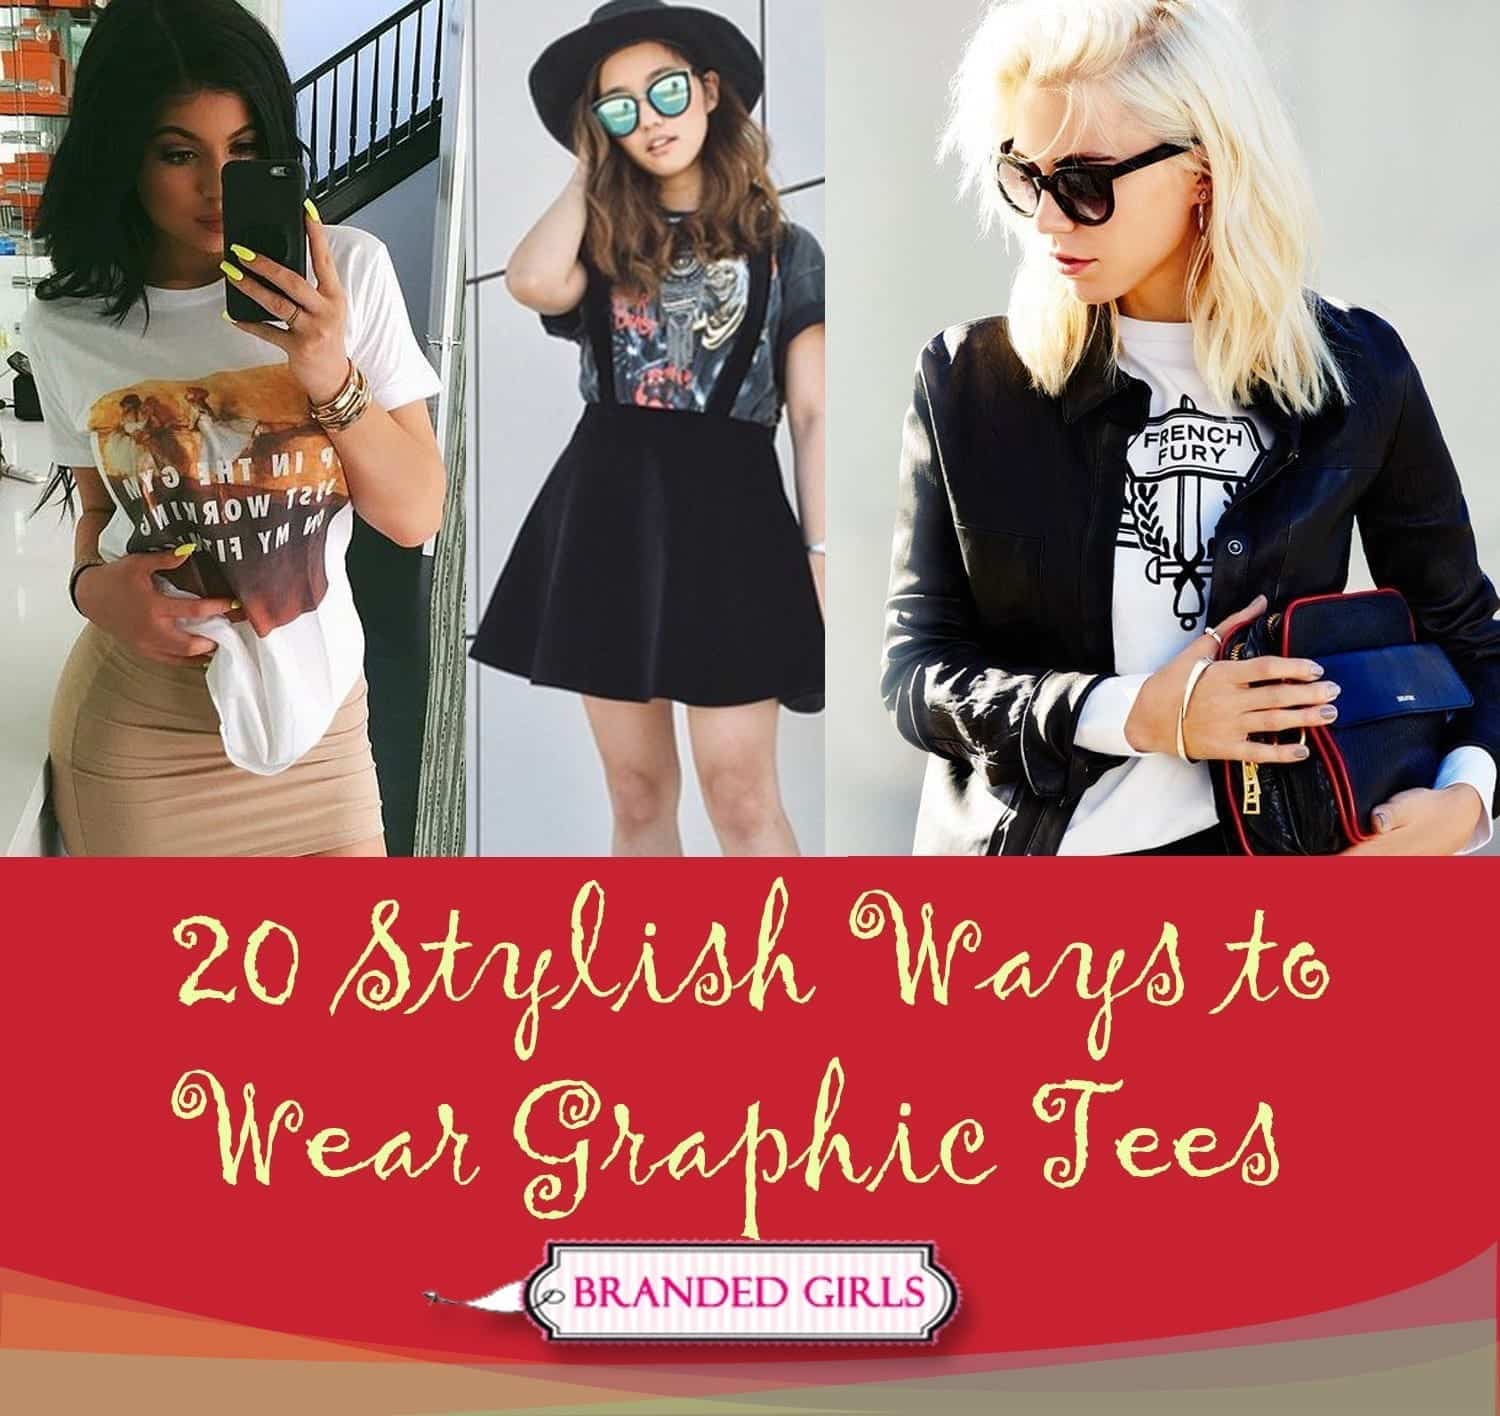 20 stylish ways to wear graphic tees